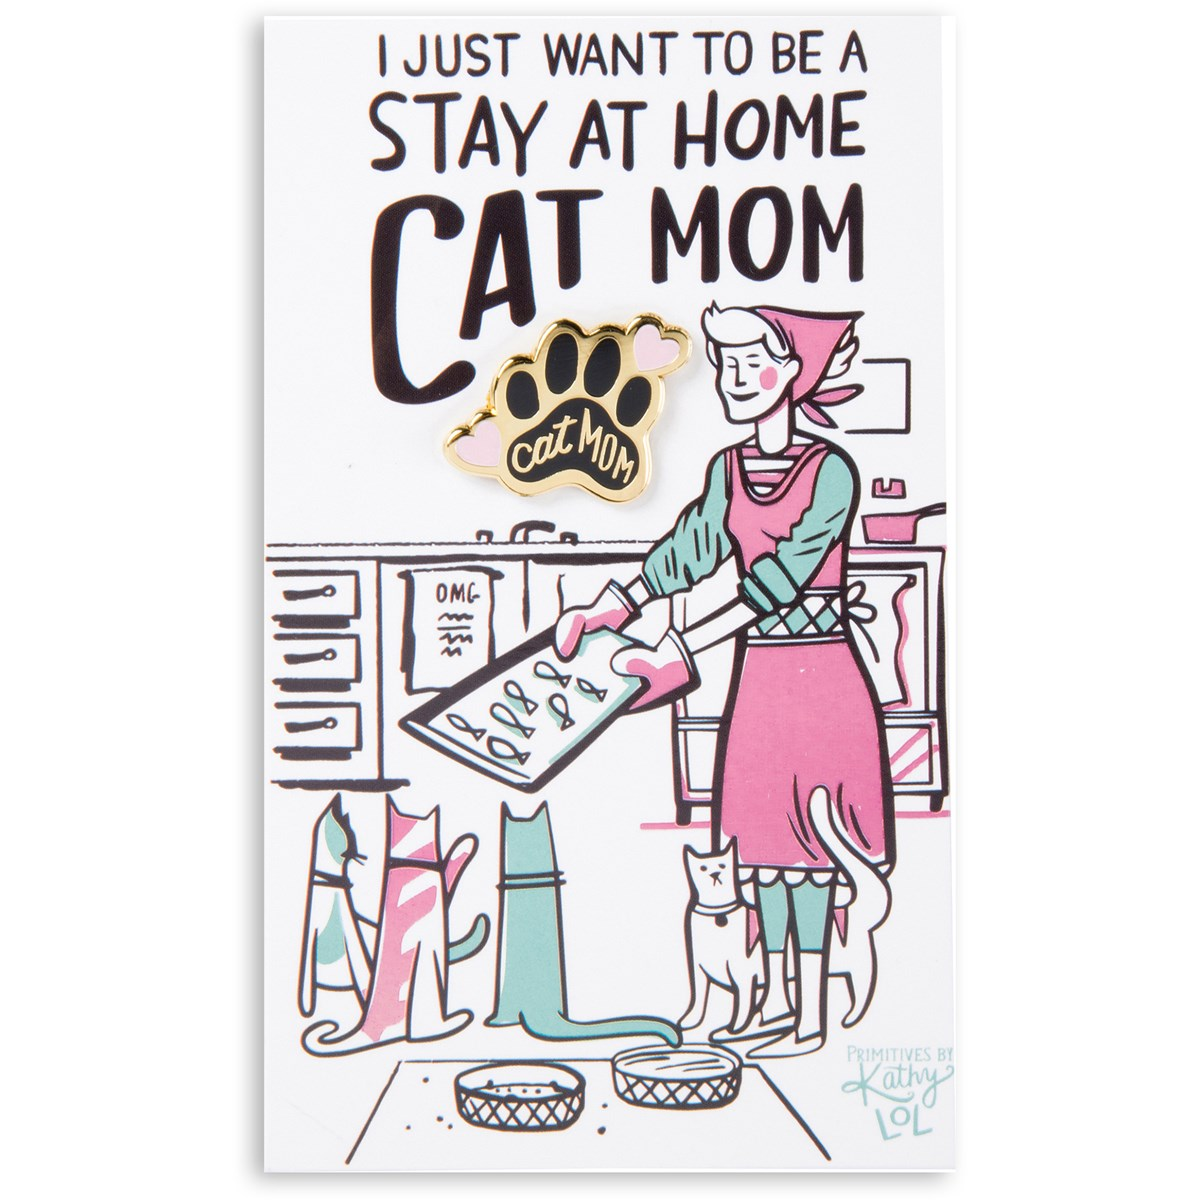 "Enamel Pin - Want To Be A Stay At Home Cat Mom - Pin: 1"" x 1"", Card: 3"" x 5"" - Metal, Enamel, Paper"